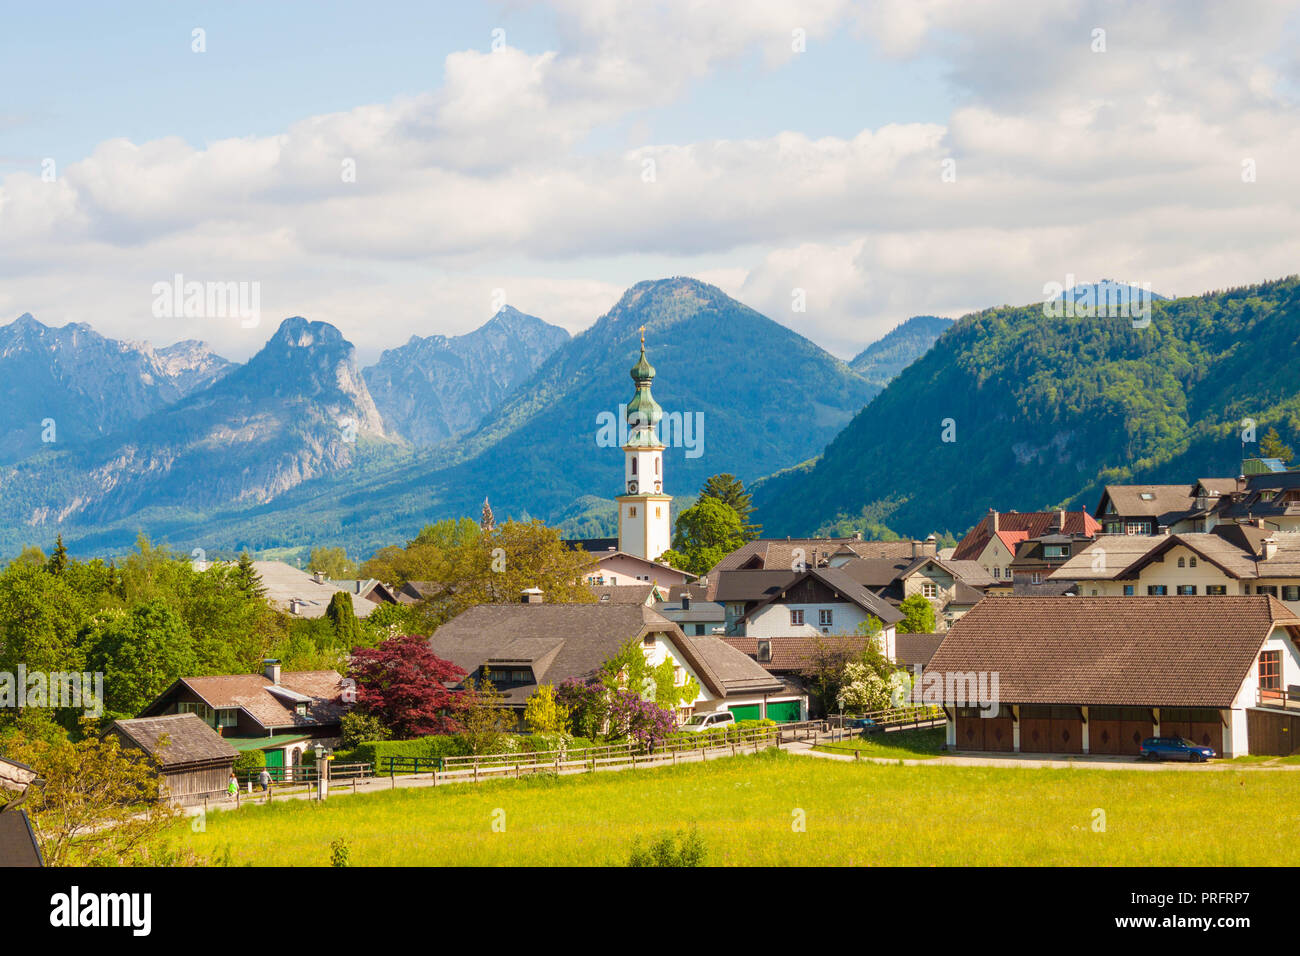 Alpine village St. Gilgen with a church, mountains on background. Summer landscape of countryside, Austria. - Stock Image